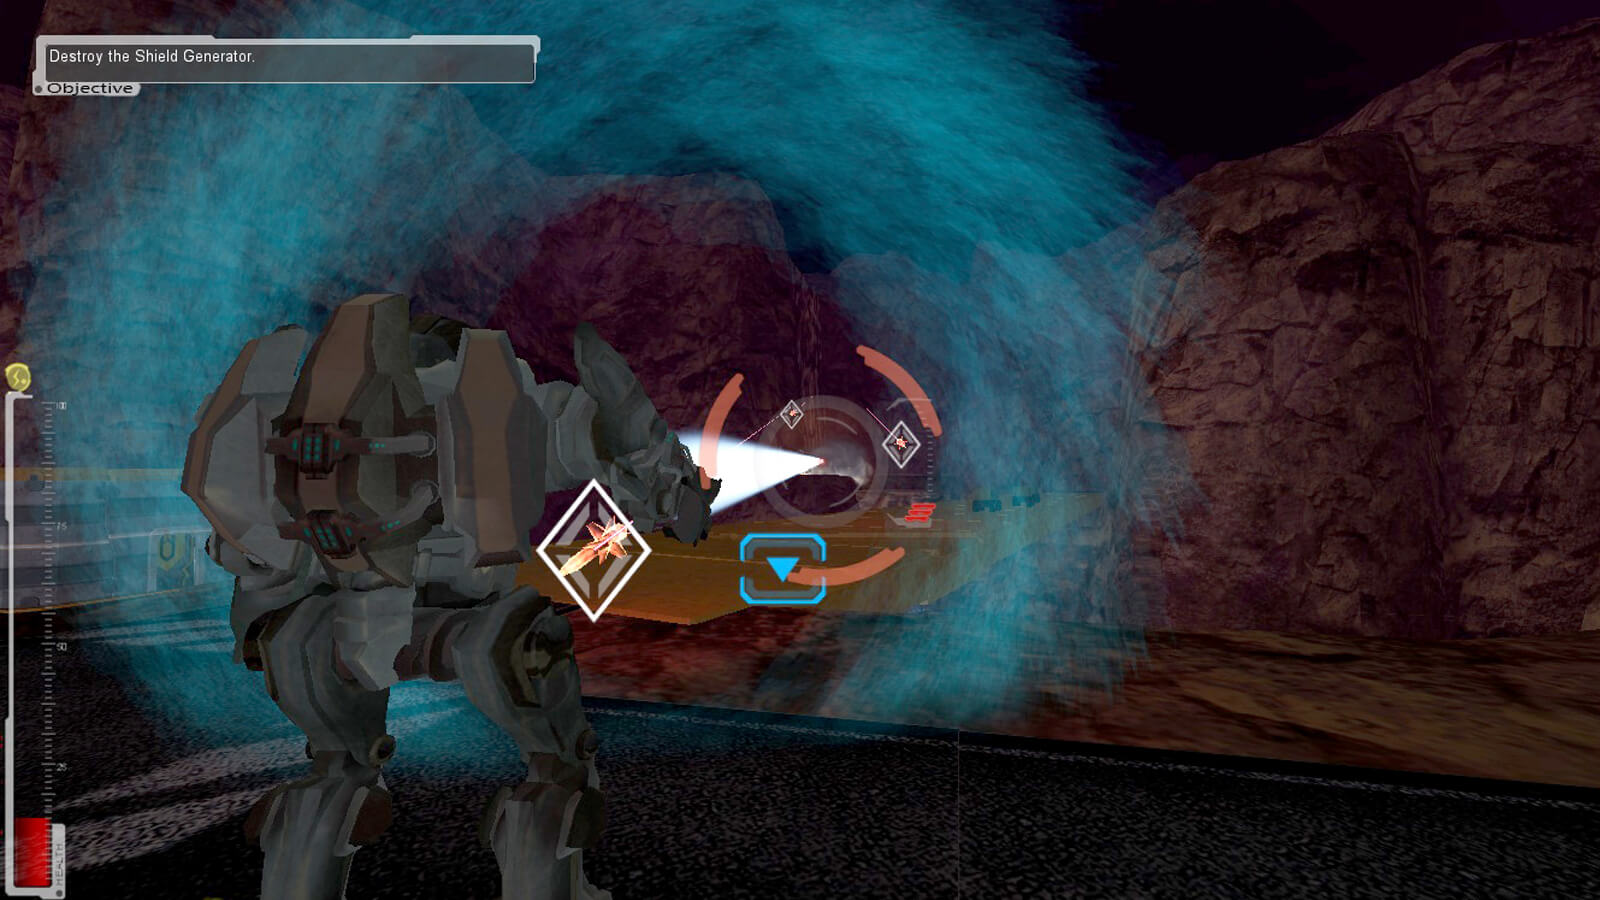 Mech suit seen from behind in a cave preparing to fire a missile